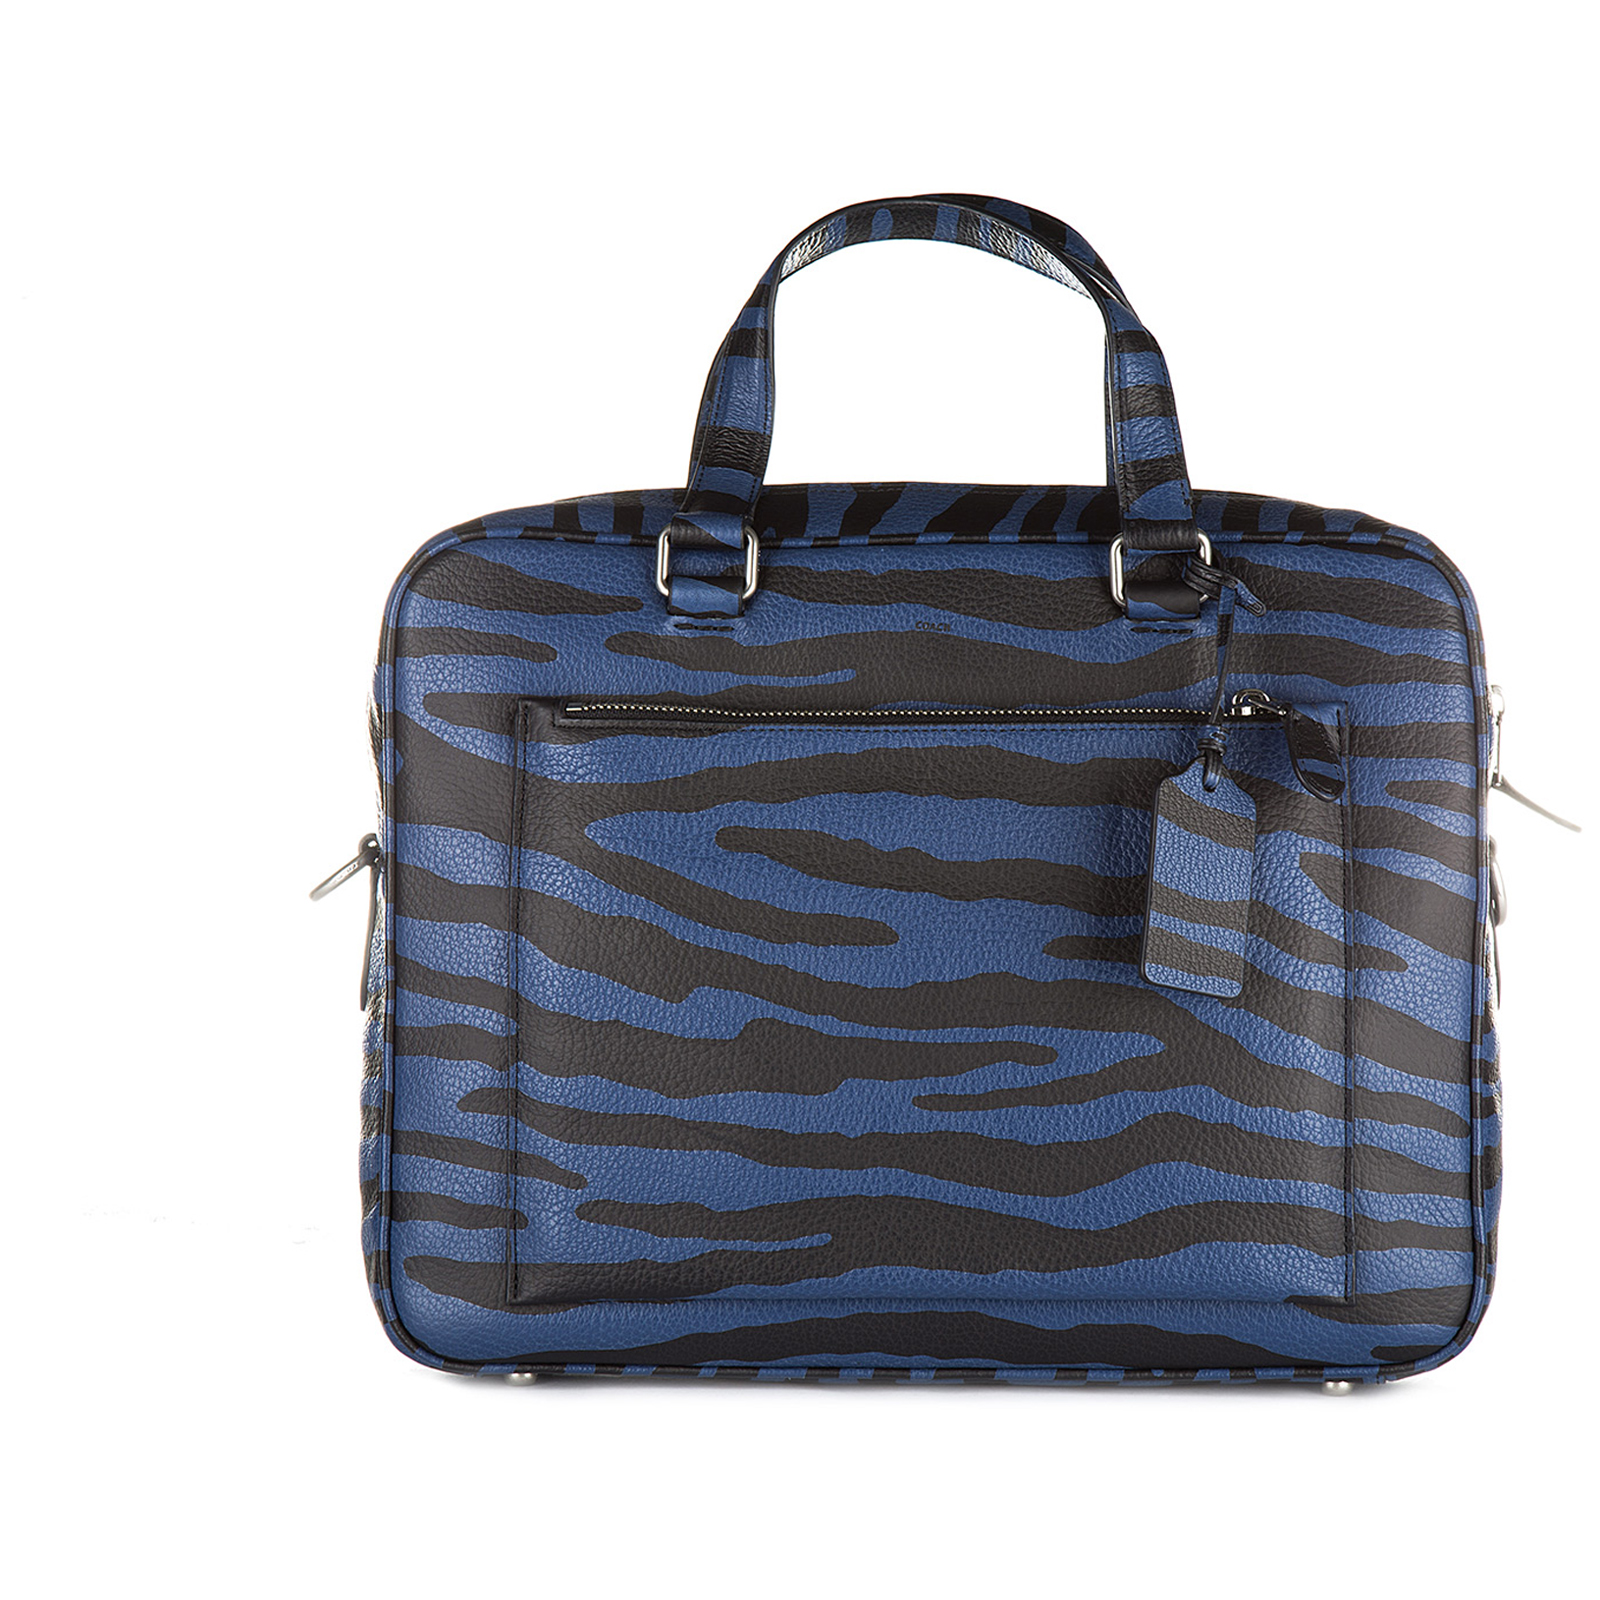 Sac porte-documents homme en cuir